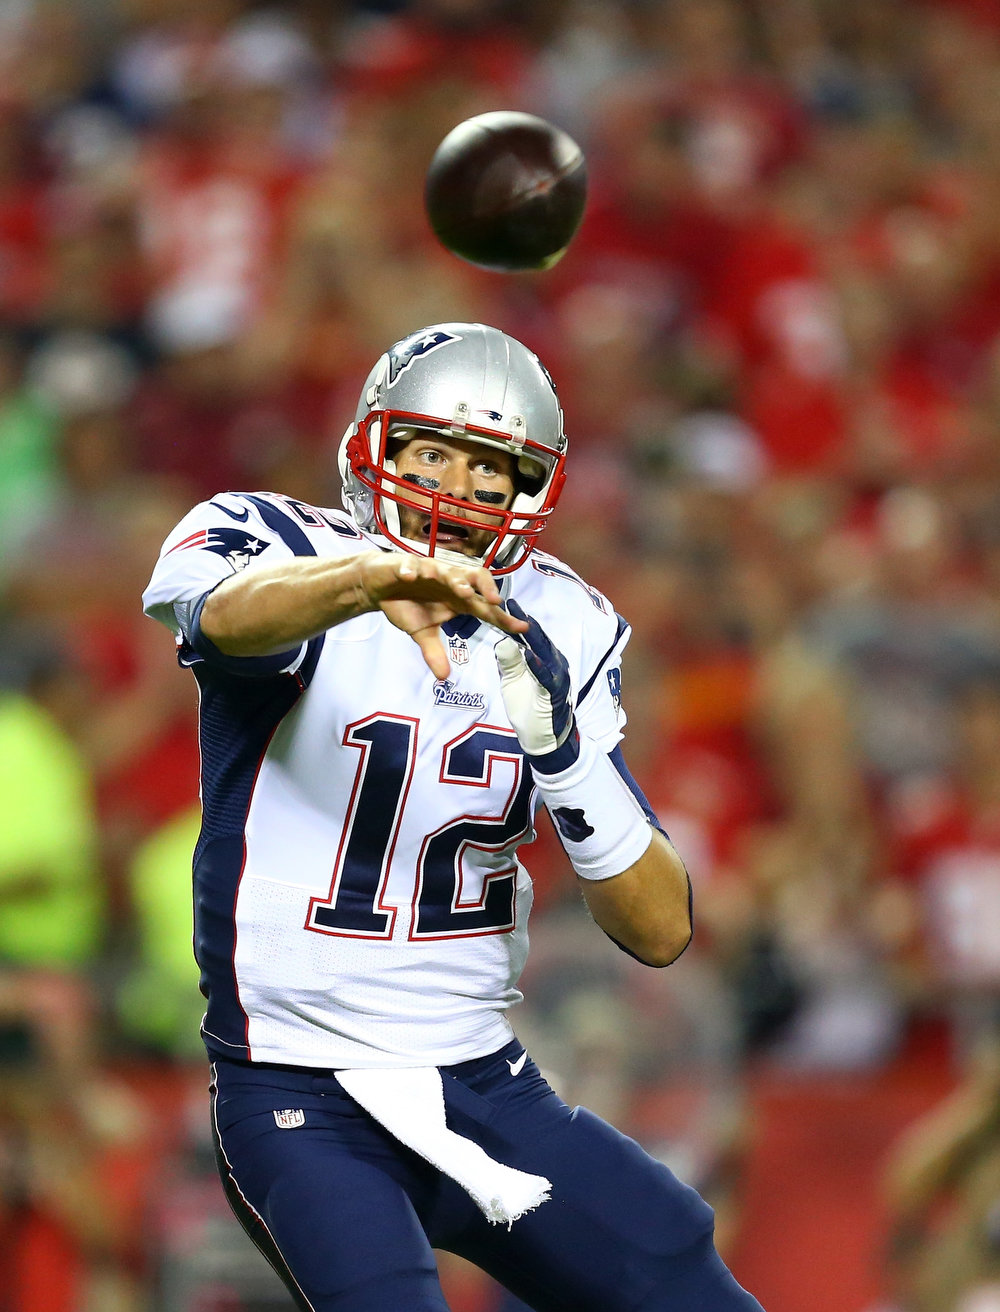 . Tom Brady #12 of the New England Patriots passes against the Kansas City Chiefs during the first half at Arrowhead Stadium on September 29, 2014 in Kansas City, Missouri.  (Photo by Dilip Vishwanat/Getty Images)